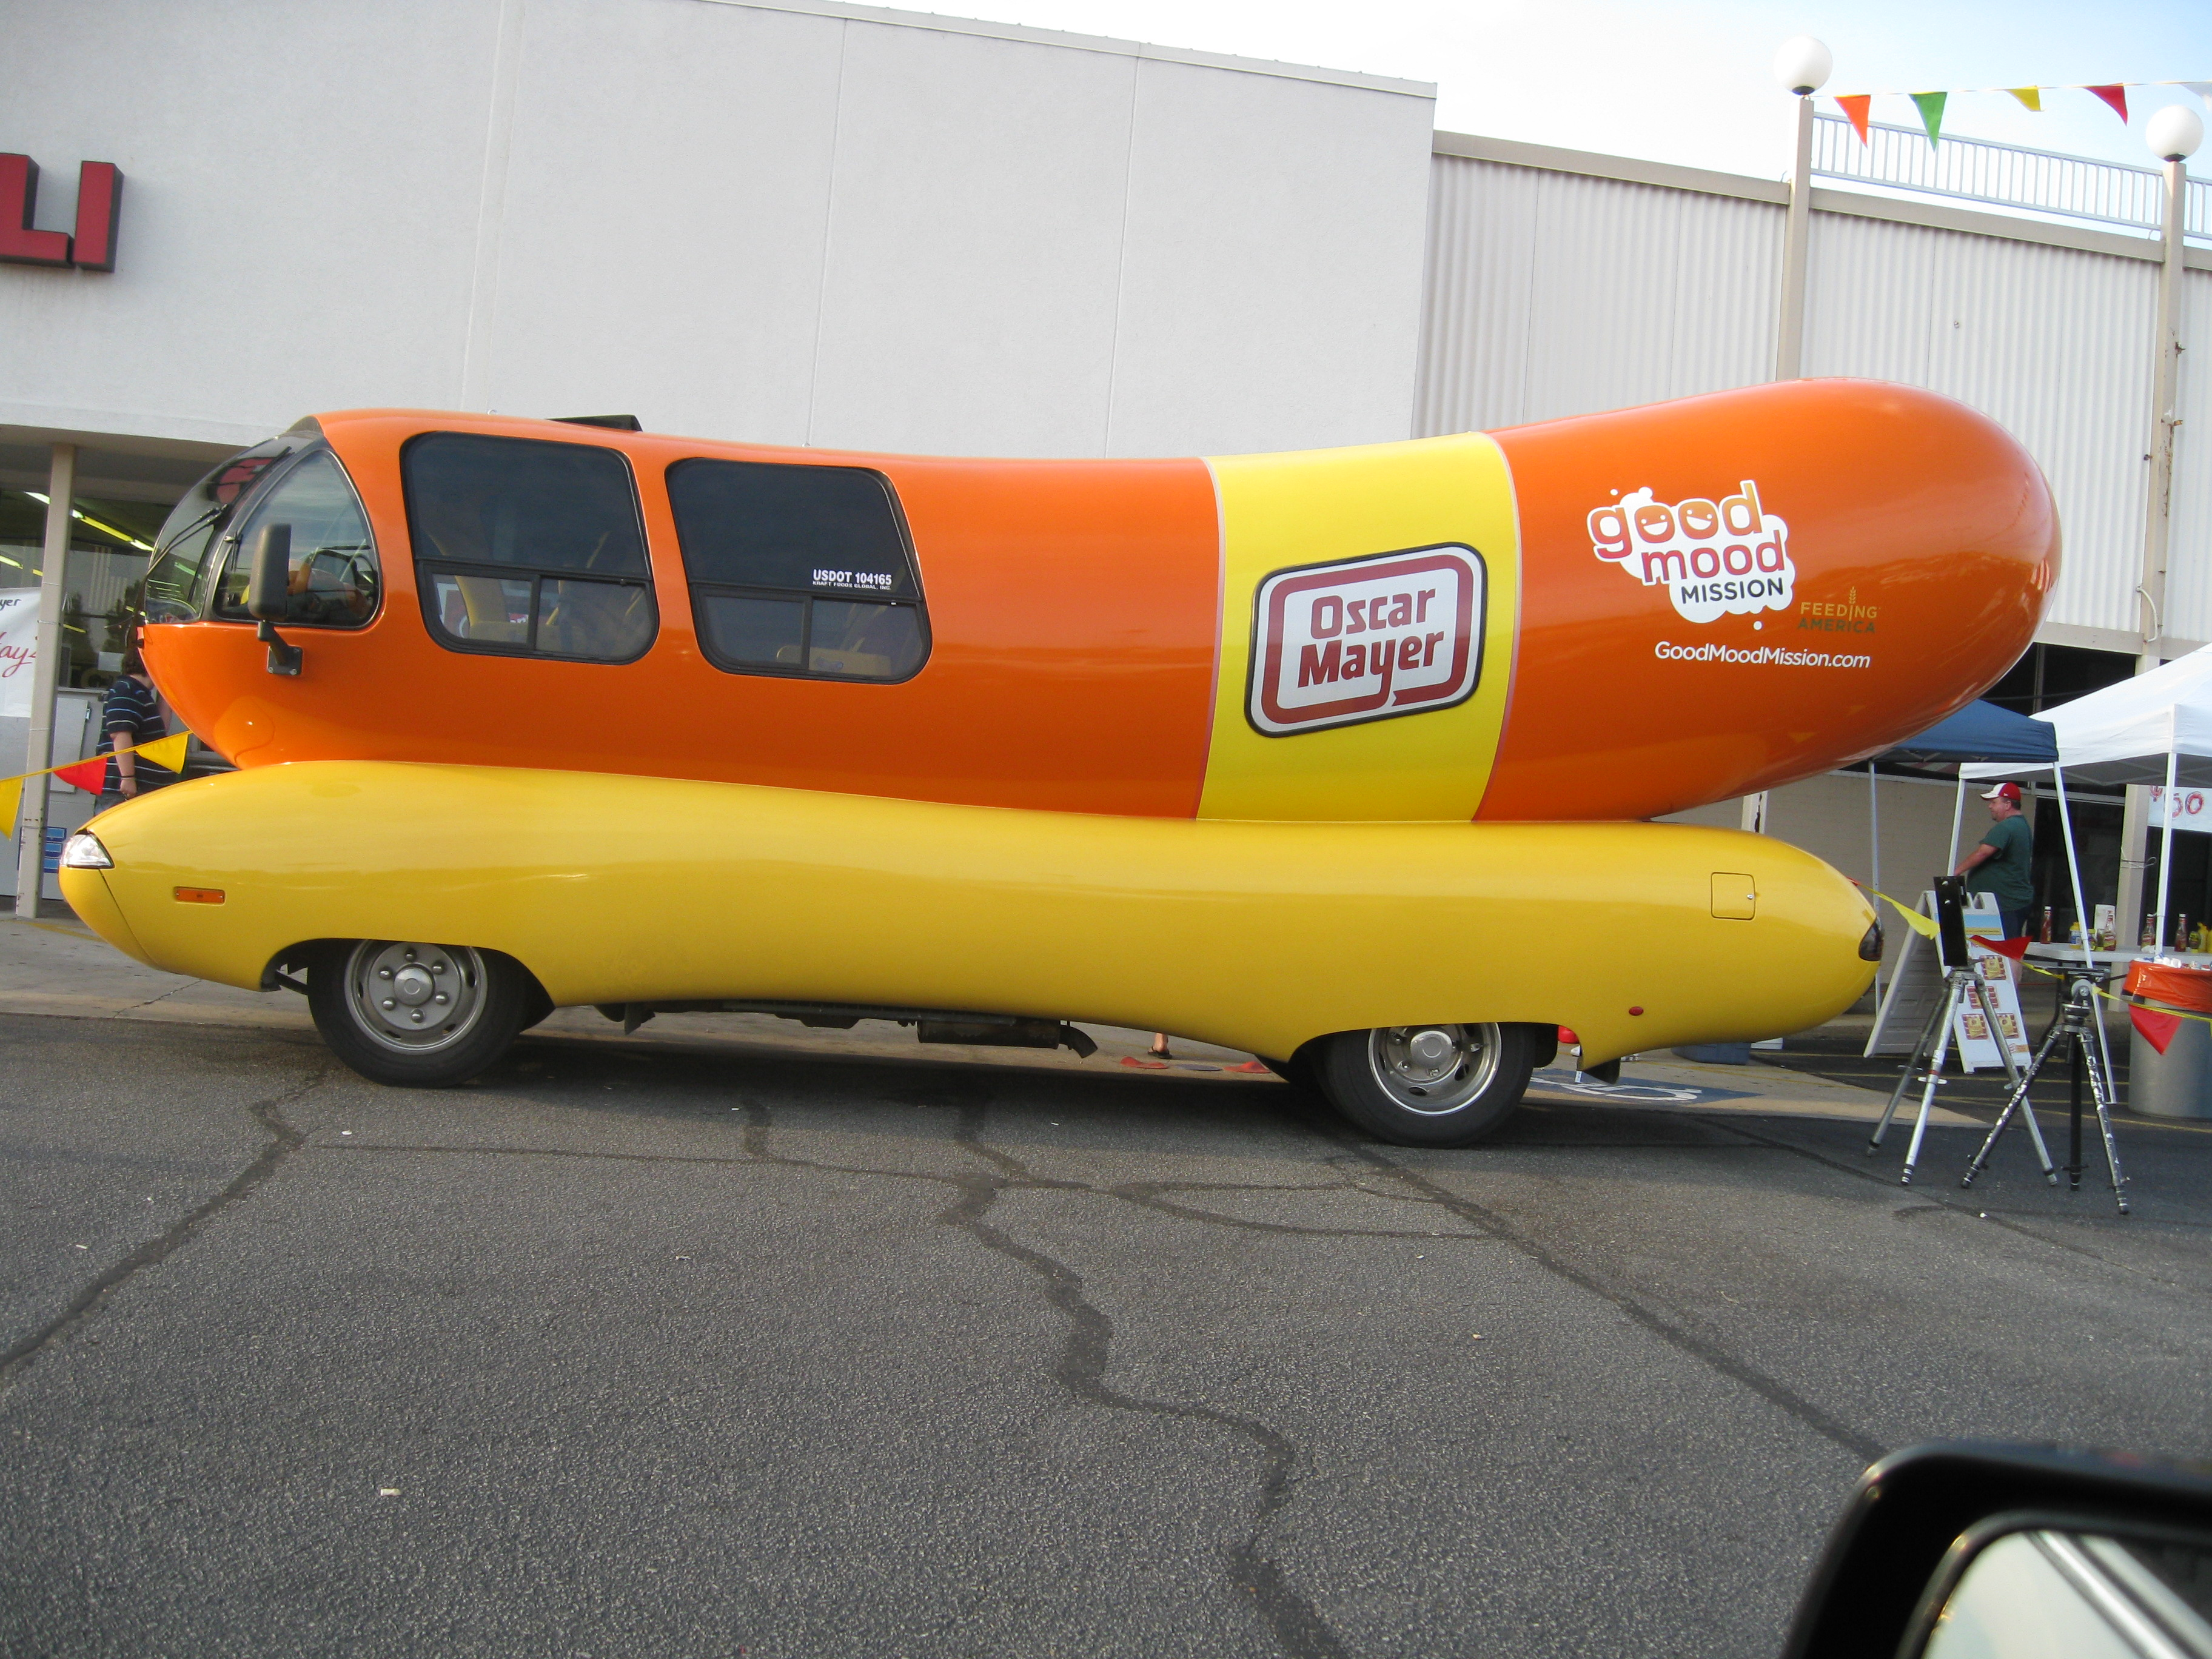 oscar mayer wienermobile pics4learning. Black Bedroom Furniture Sets. Home Design Ideas